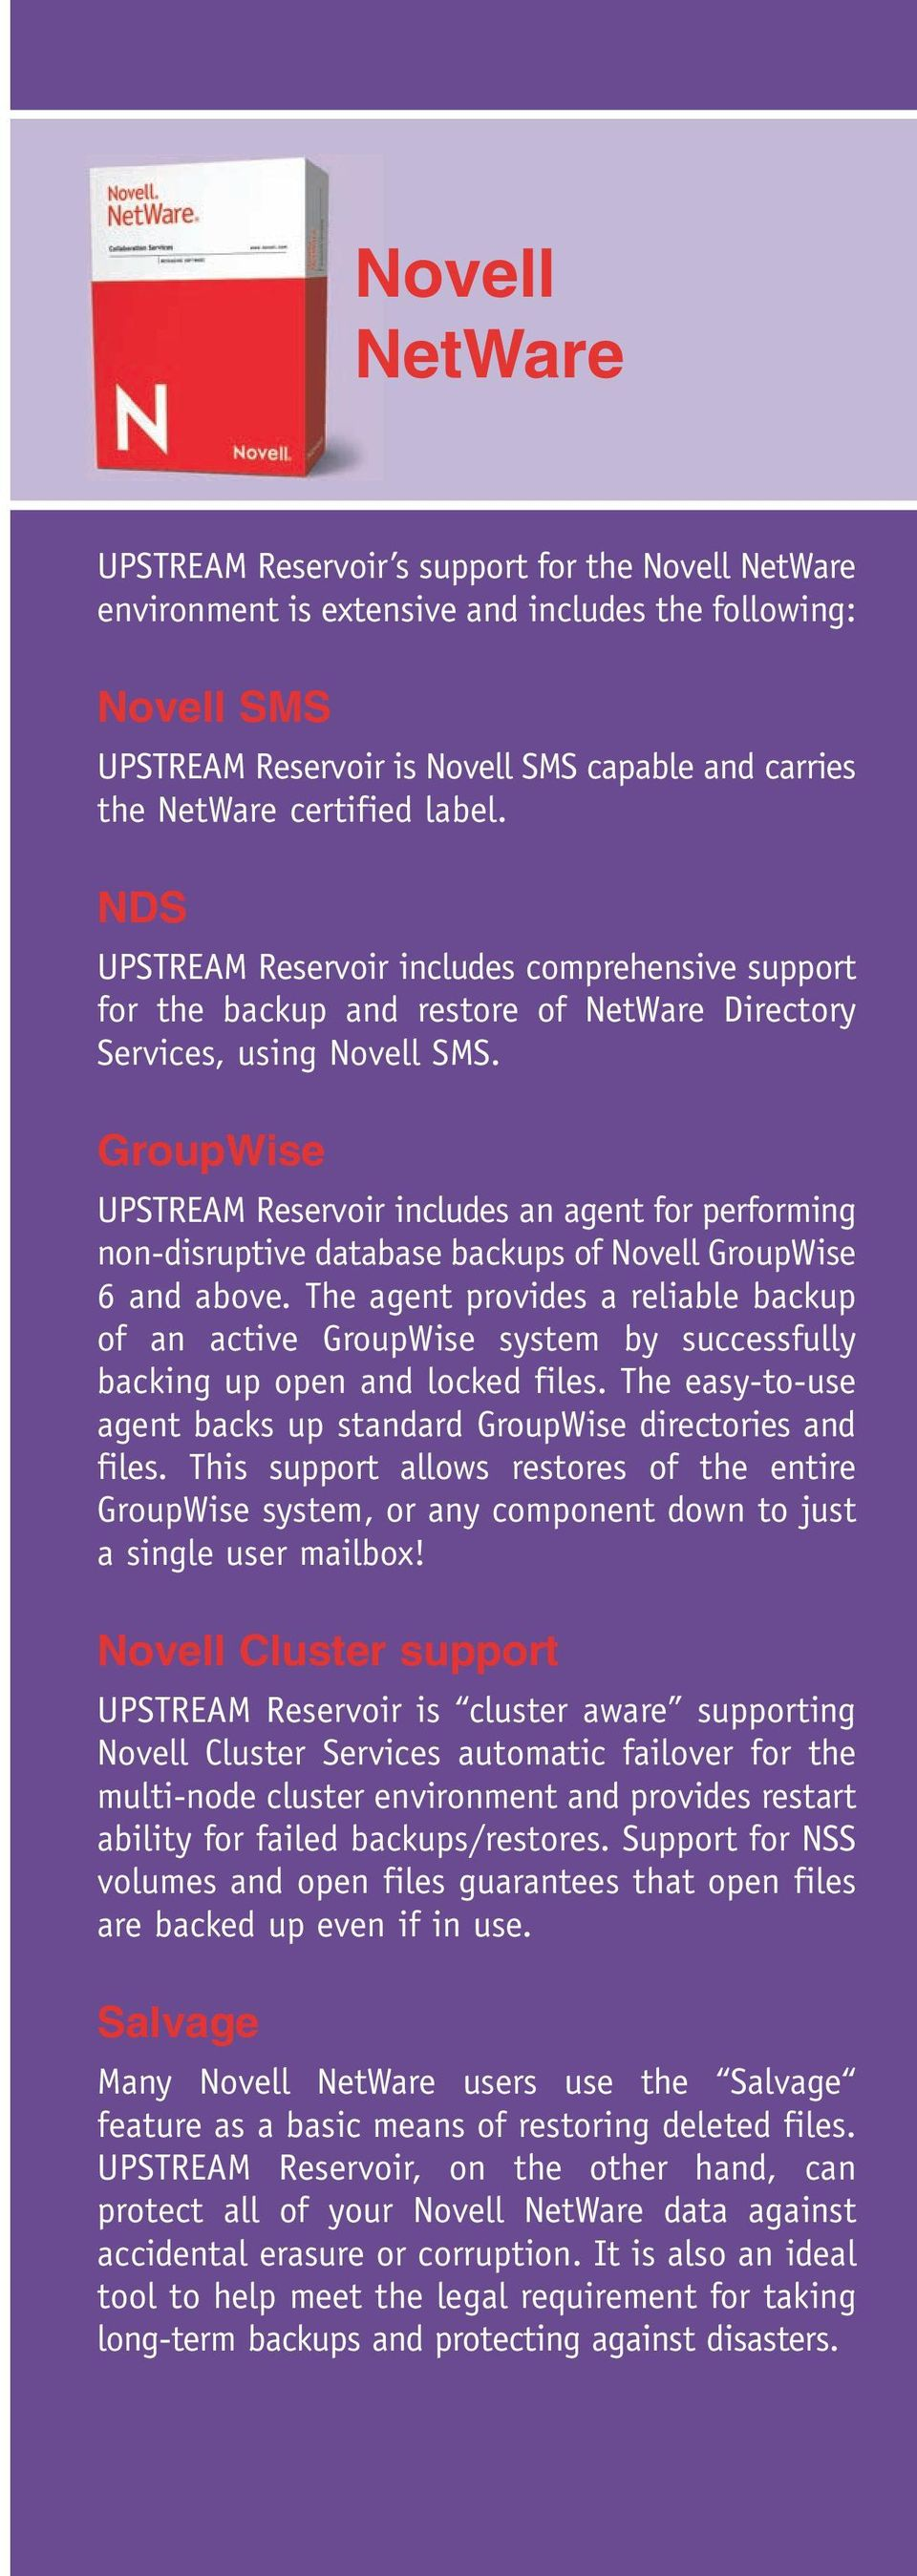 GroupWise UPSTREAM Reservoir includes an agent for performing non-disruptive database backups of Novell GroupWise 6 and above.